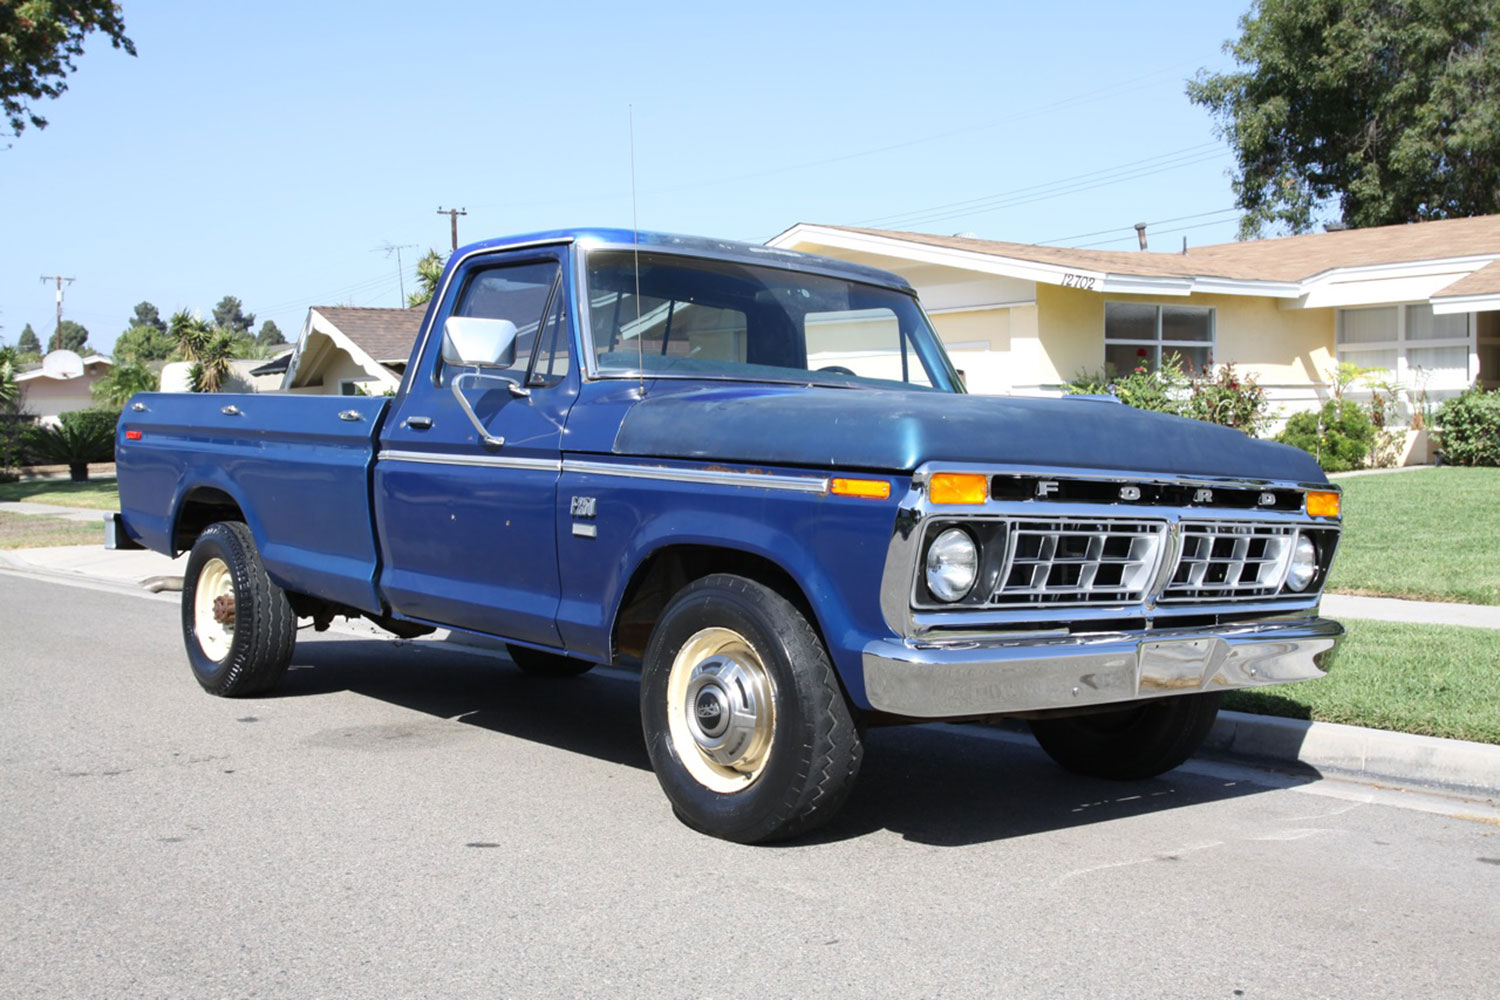 My 1976 Ford F-250